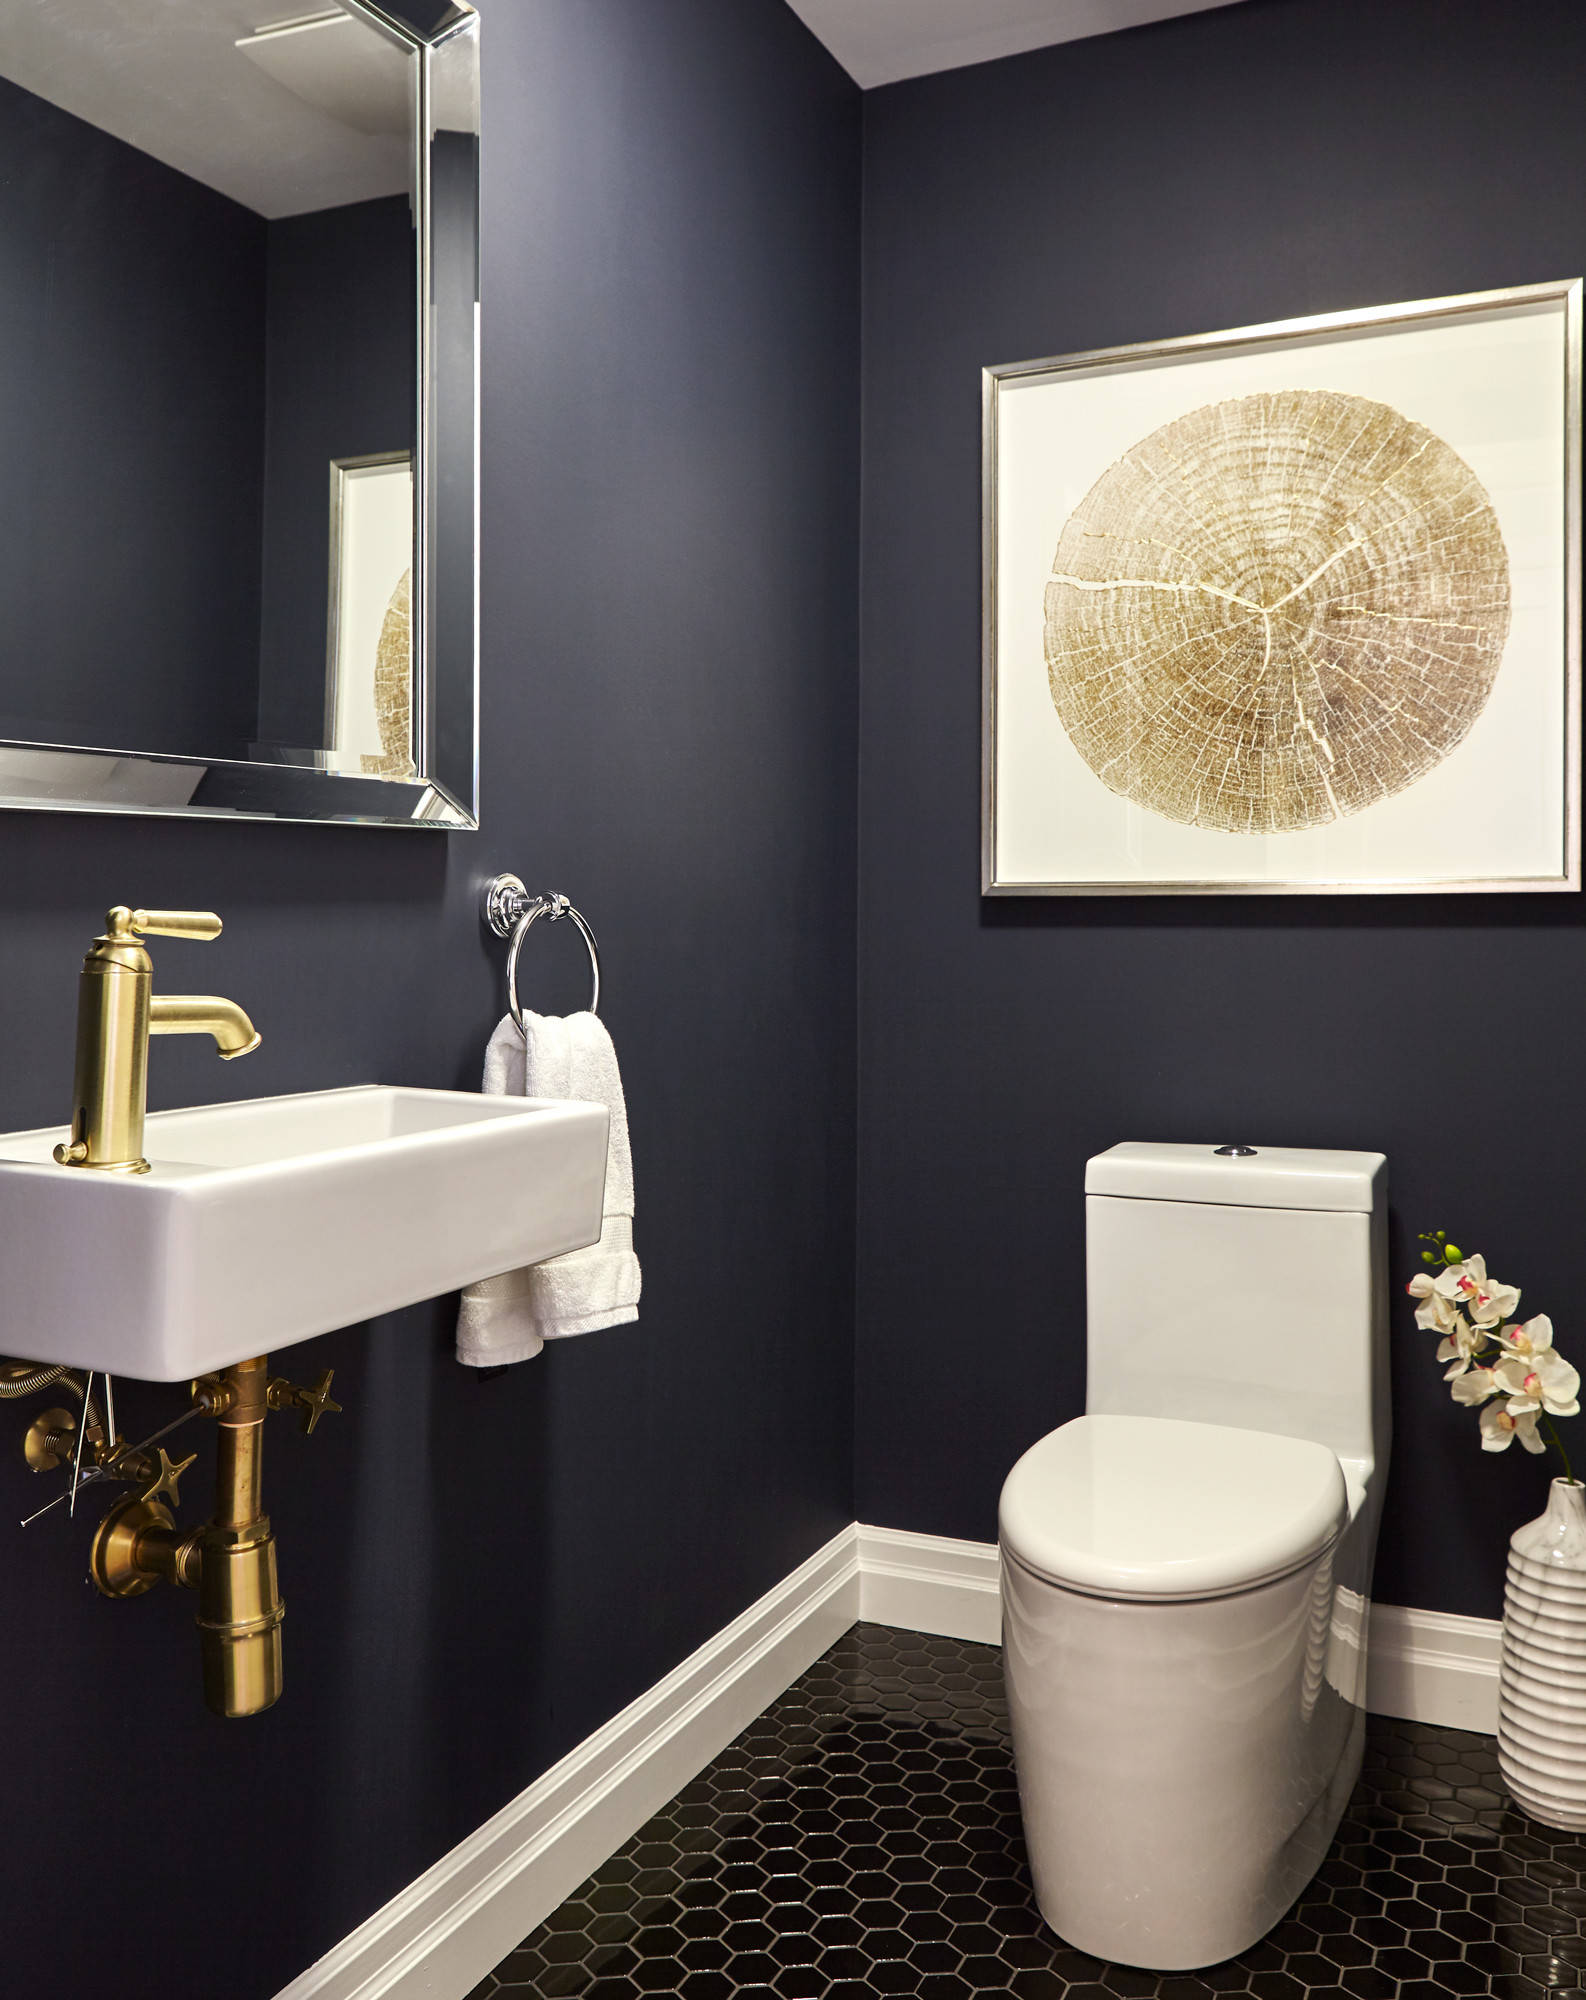 75 Beautiful Black Tile Powder Room Pictures Ideas February 2021 Houzz